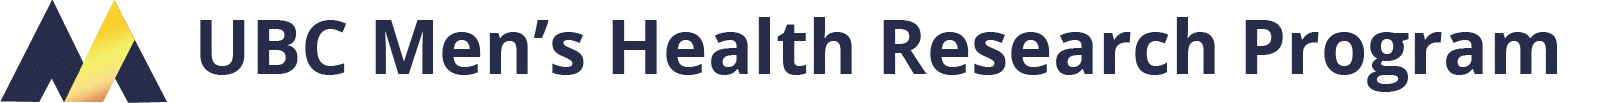 The Men's Health Research Program at UBC